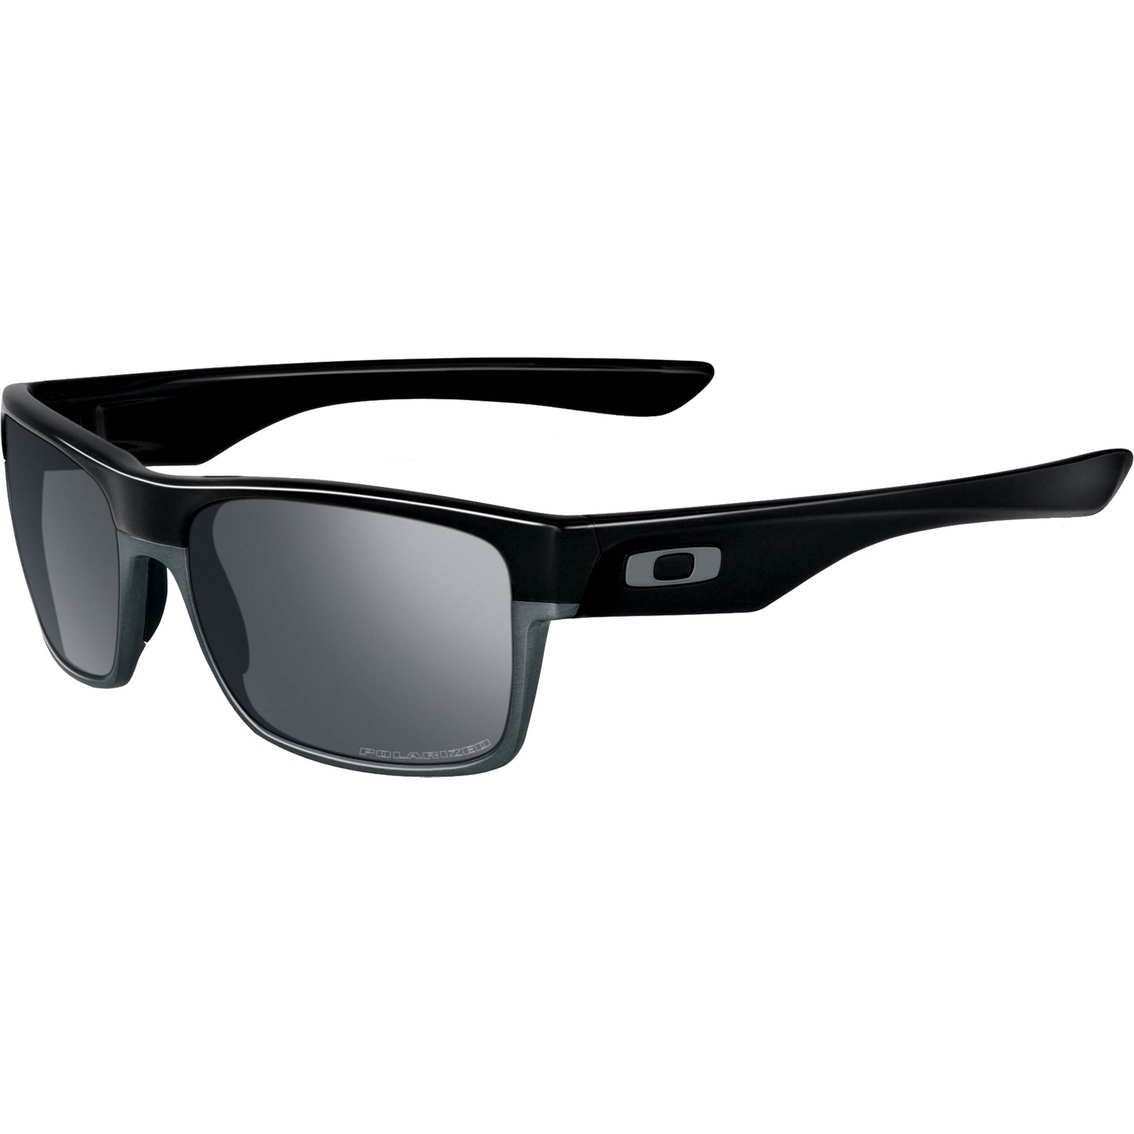 6919692c4be Oakley Twoface Iridium Polarized Sunglasses